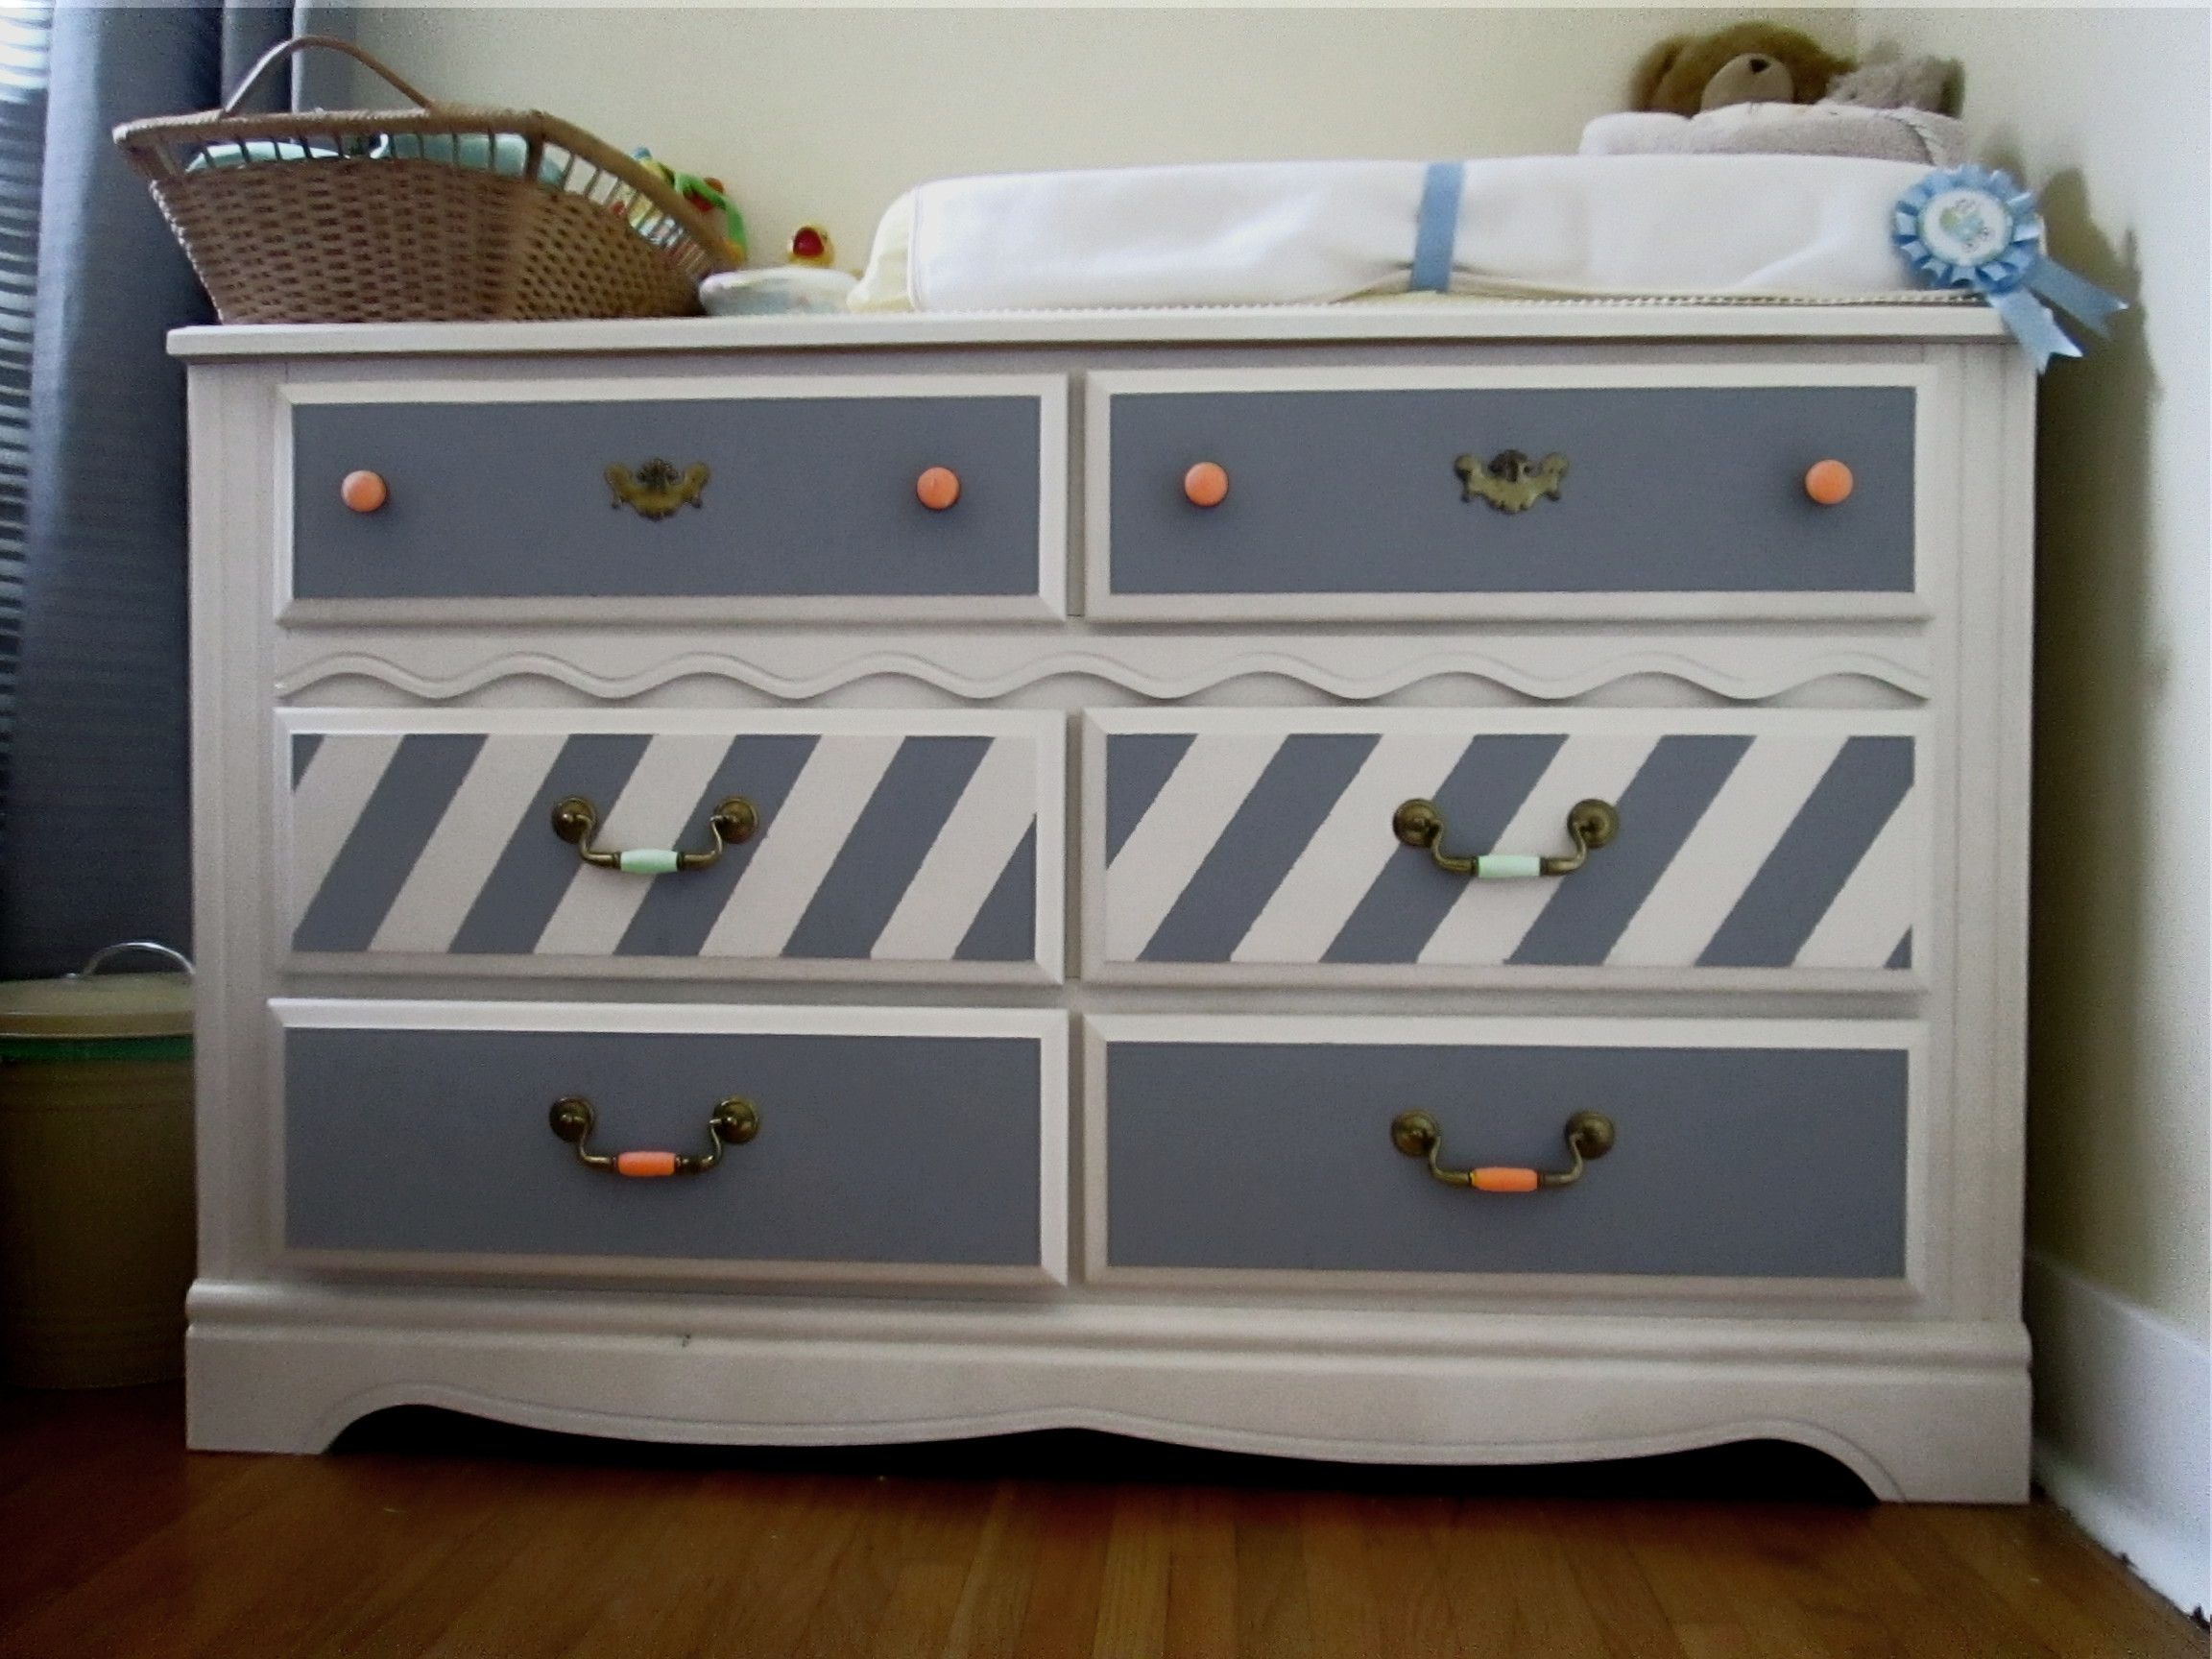 Pin By Rosemary Wells Hay On Baby Stuff Refurbished Furniture